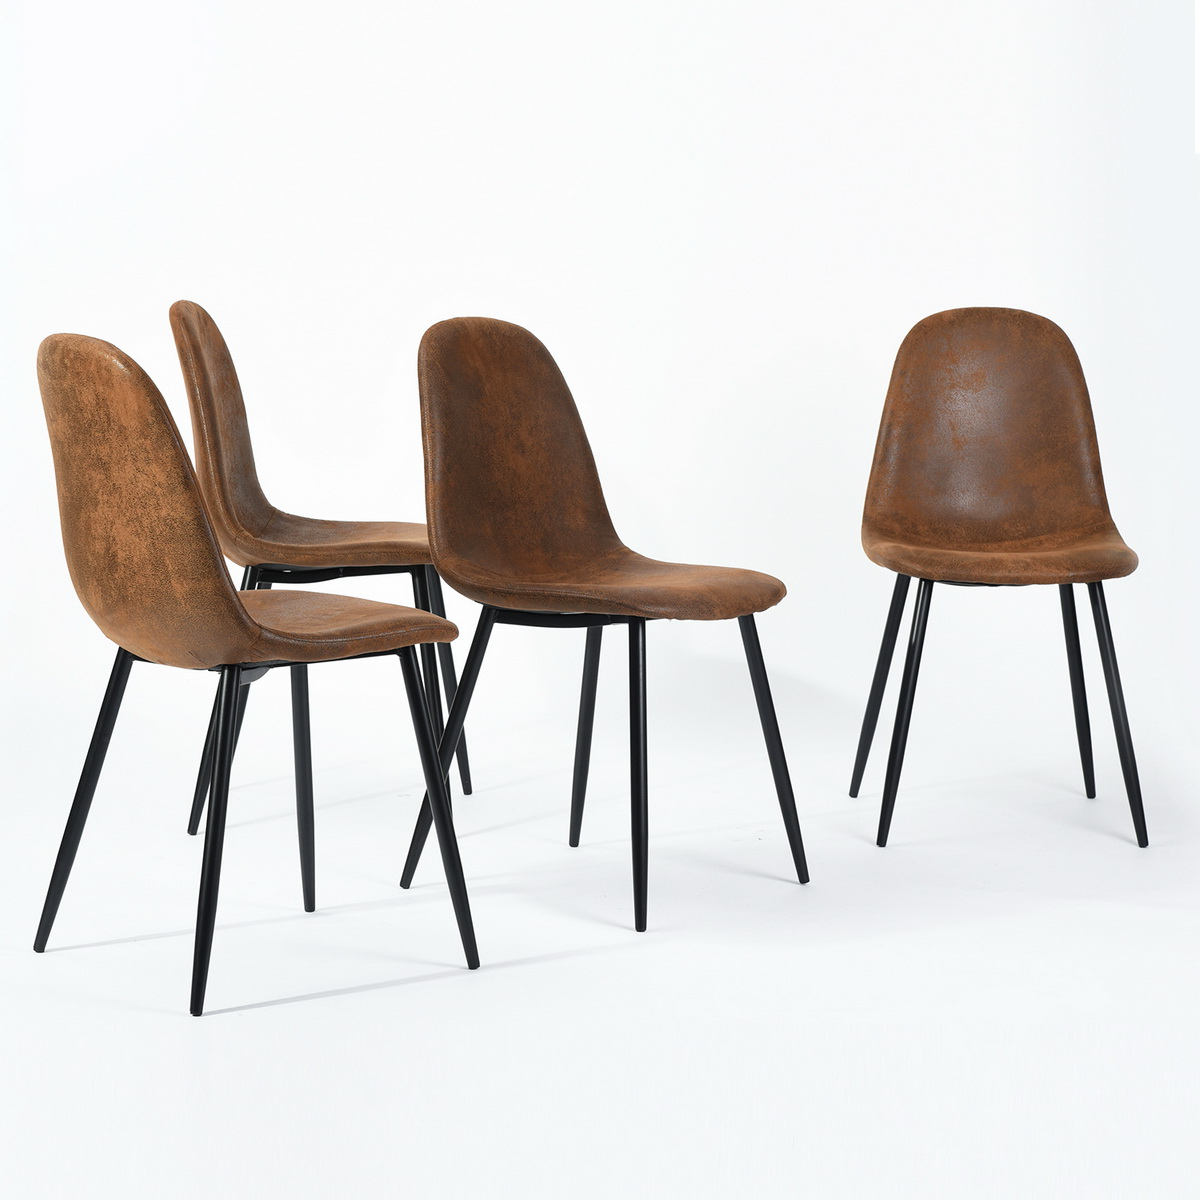 Current Metal Wall Décor By Charlton Home Within Furniturer Charlton Brown With Wood Surface Metal Legs Dining Chair, Set Of 4 – Walmart (View 18 of 20)